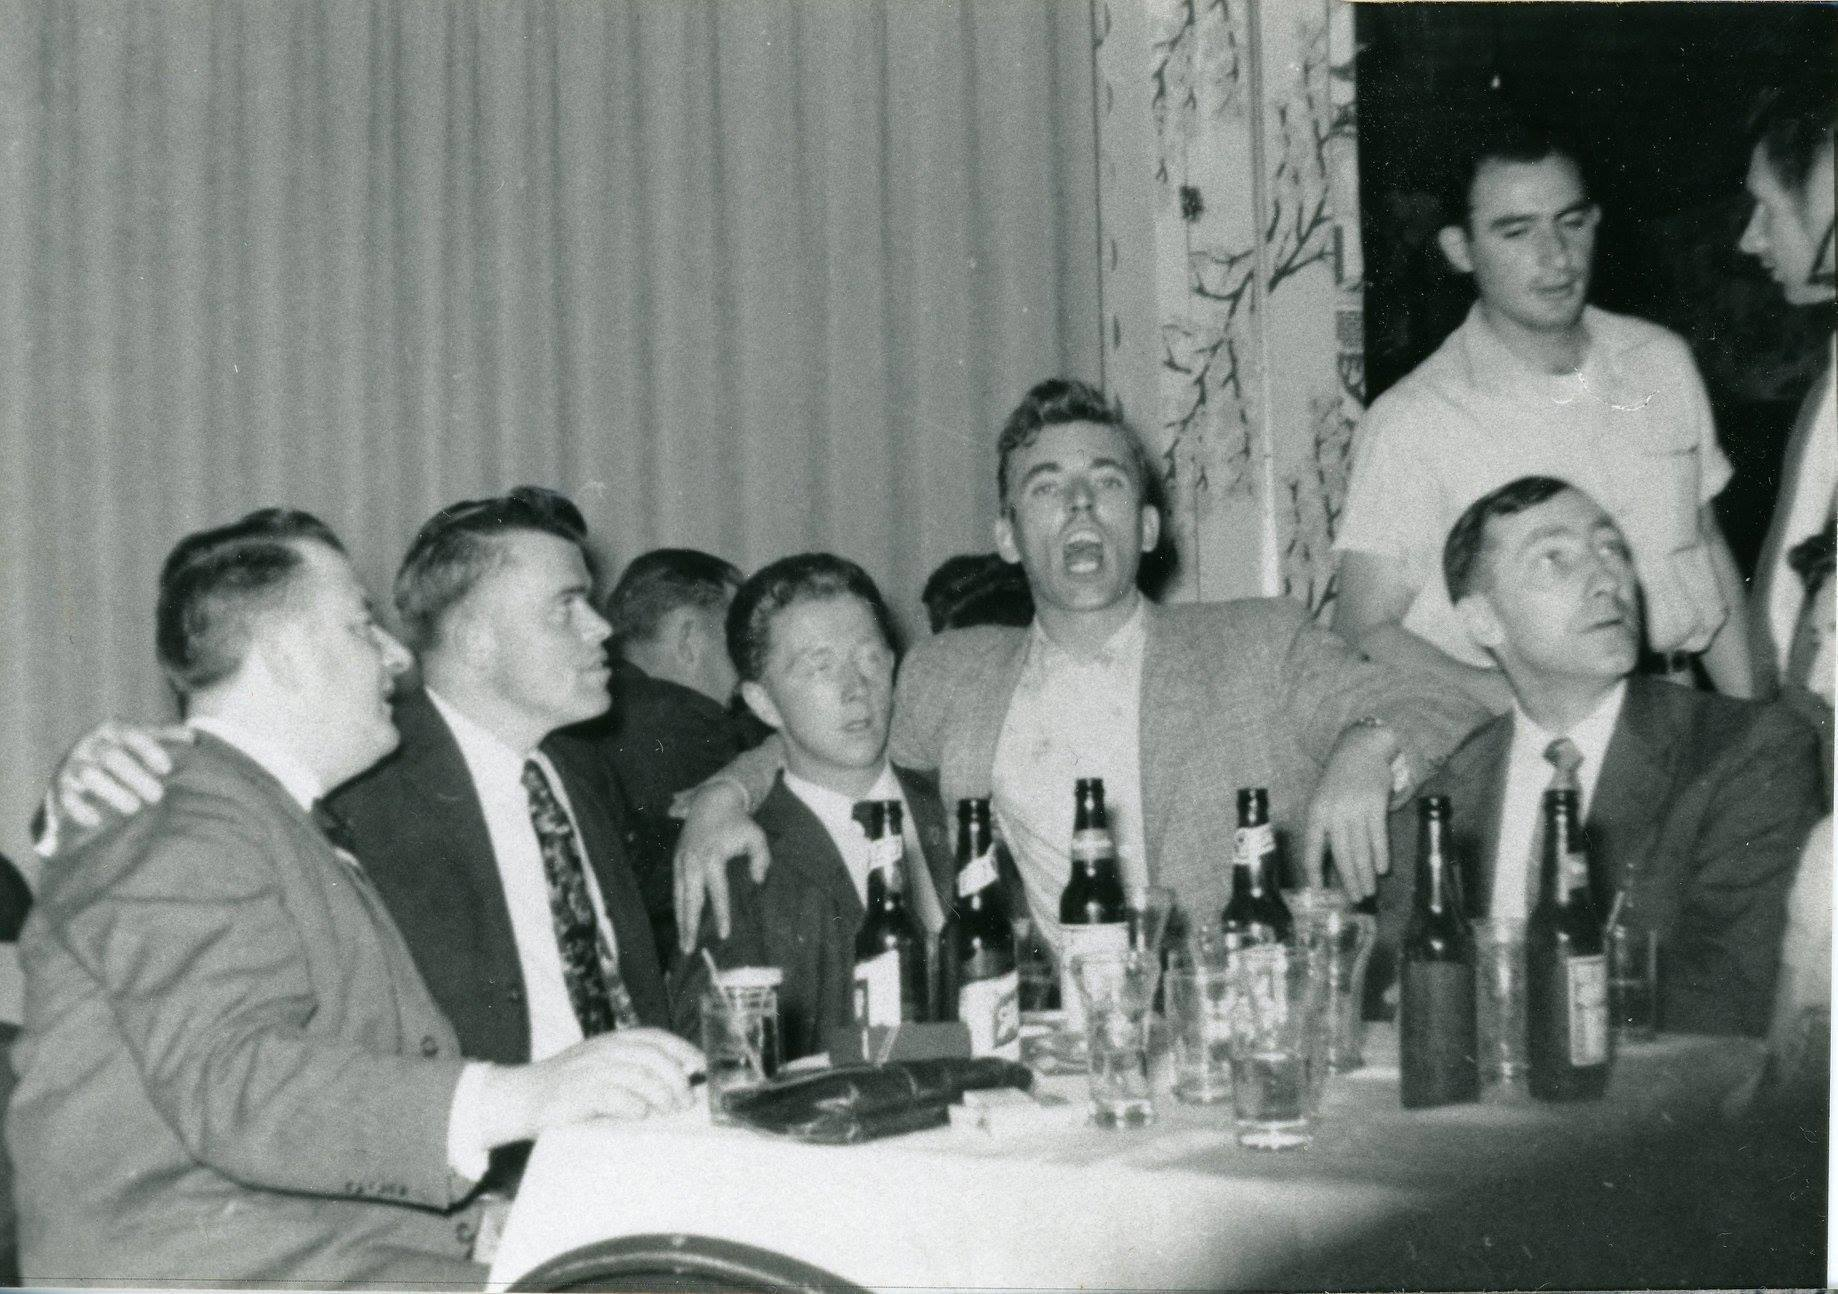 One man gestures widely at the photographer while seated at a table with four other men.